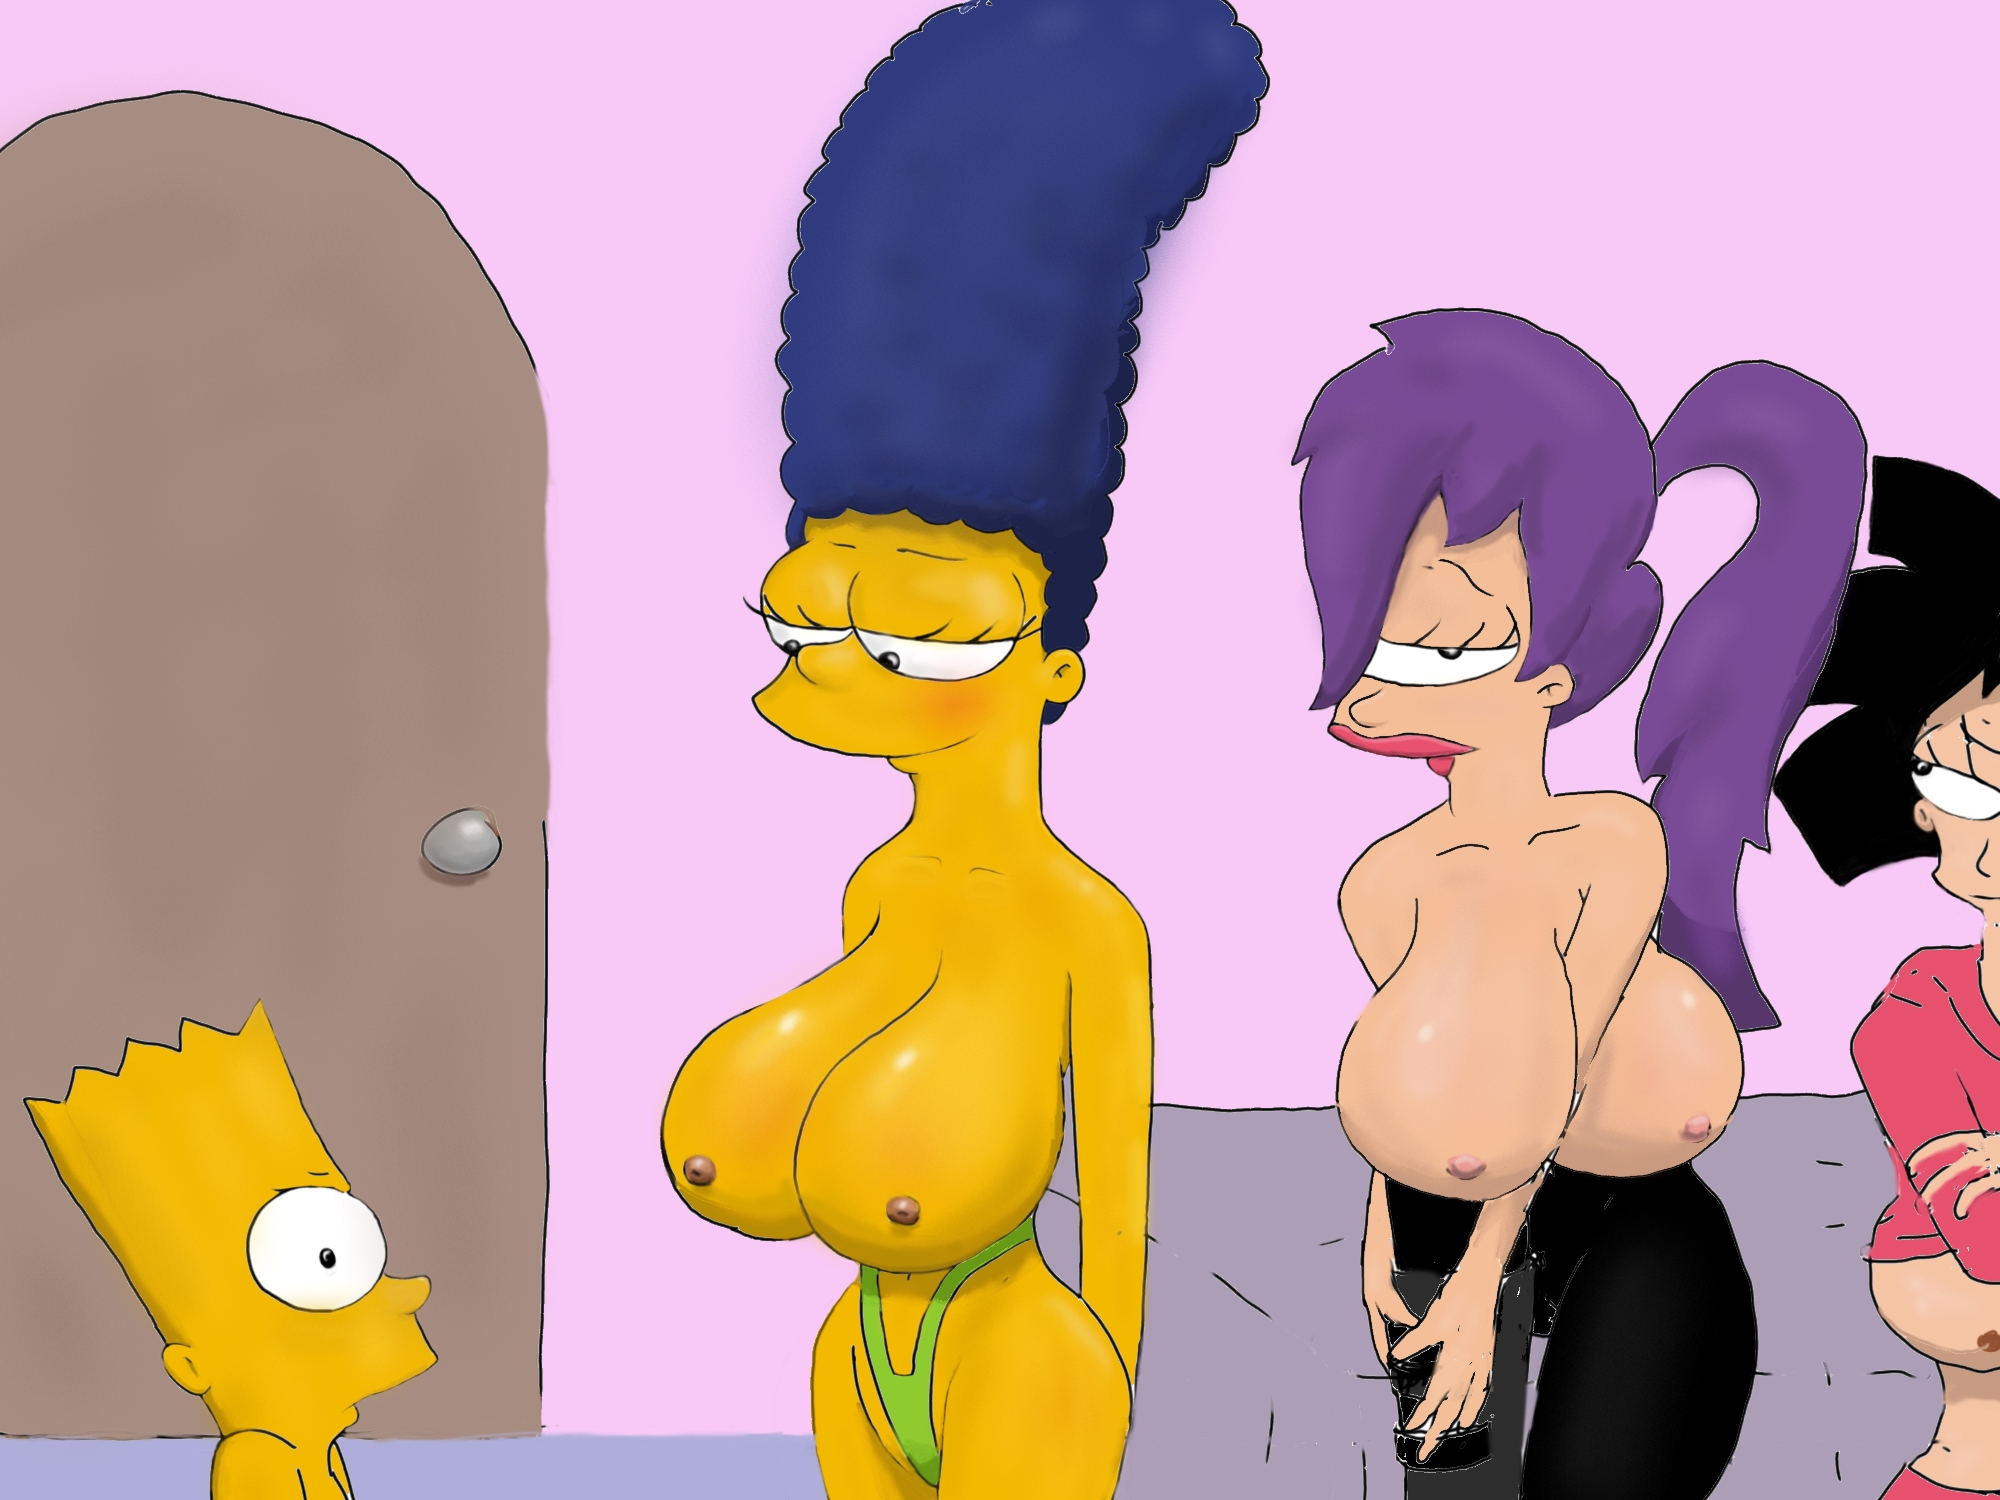 marge and leela naked denunciation description